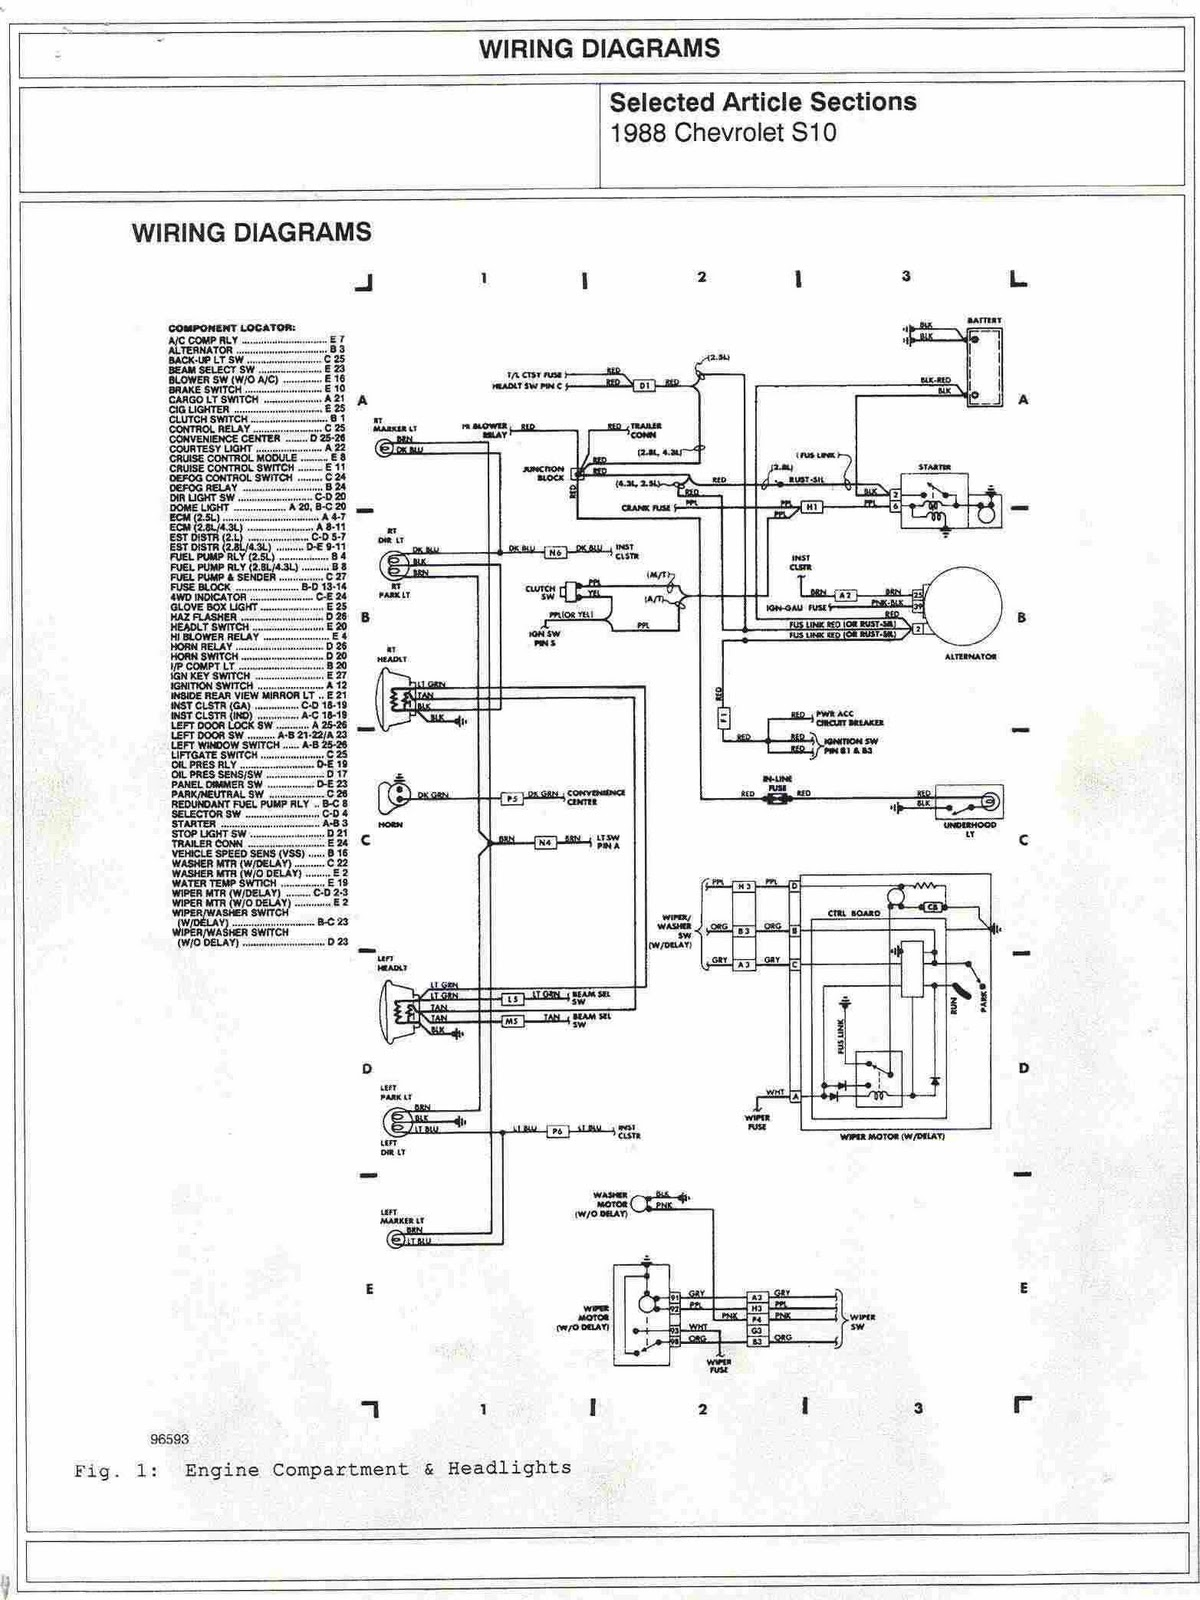 1988 s10 wiring diagram 1988 wiring diagrams online wiring diagram 1988 chevy s10 fuel pump the wiring diagram